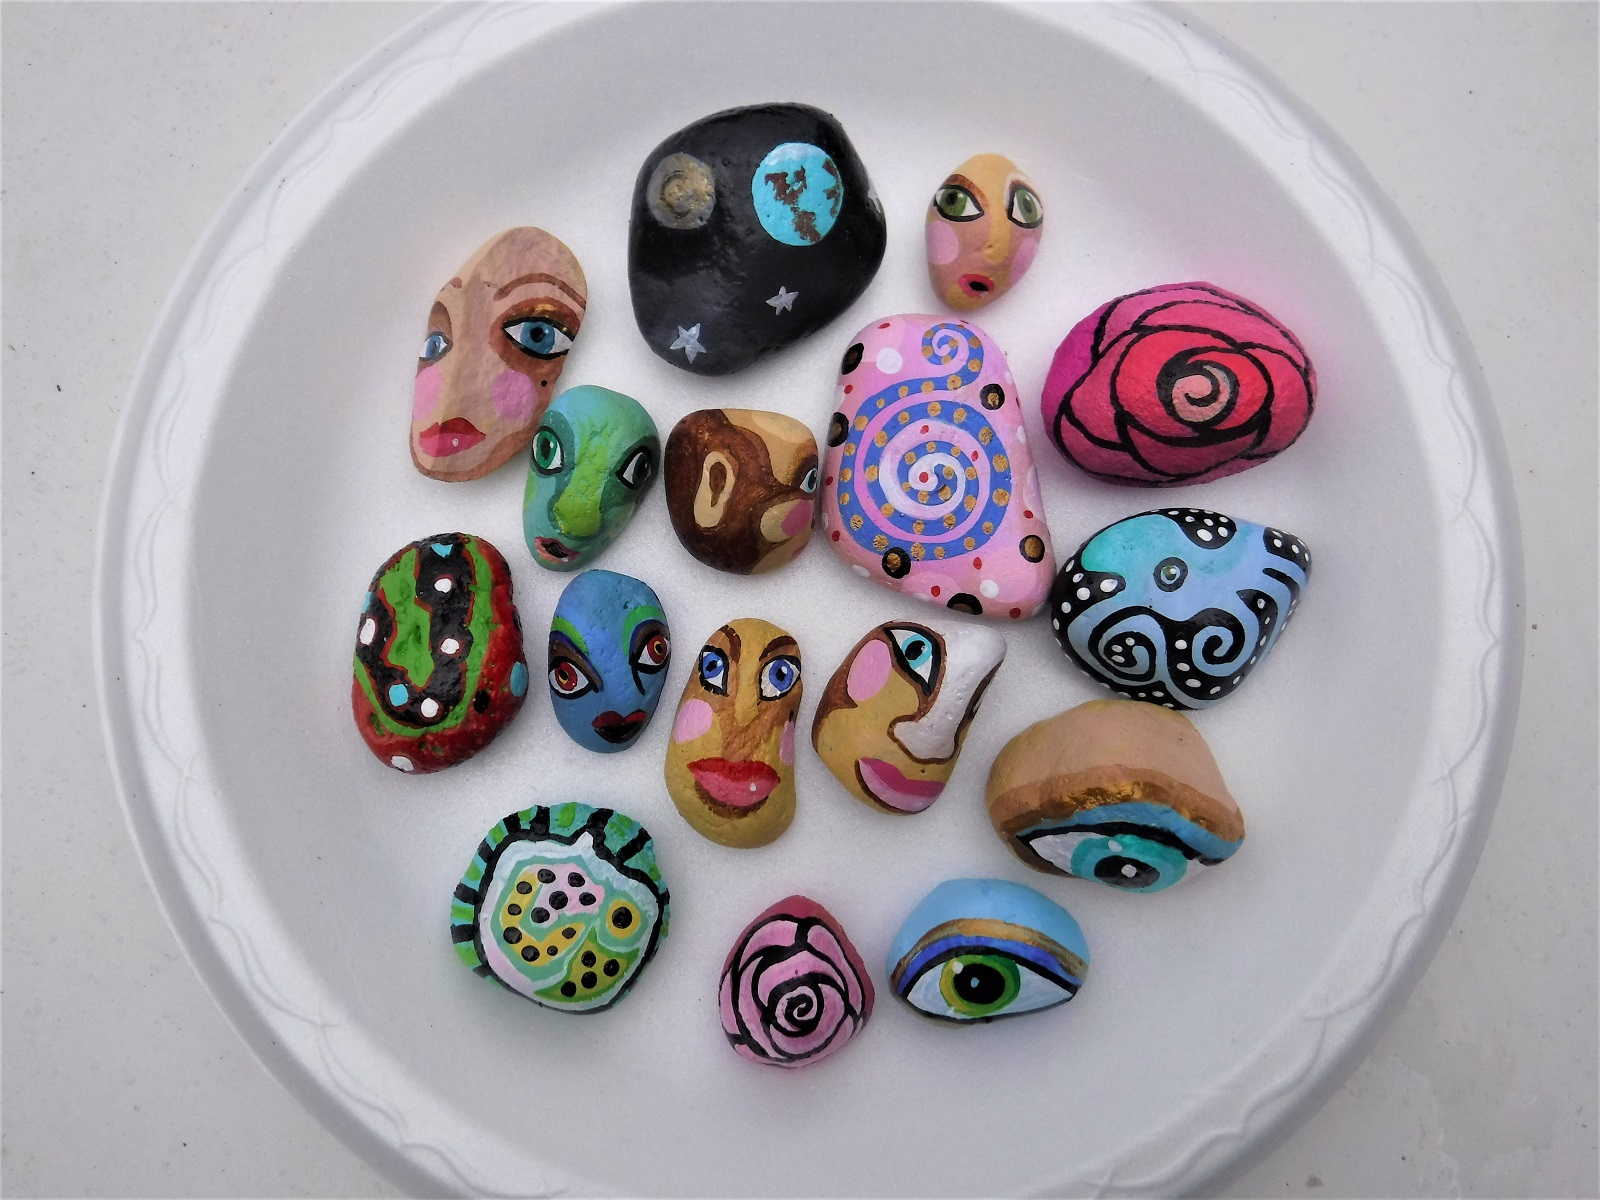 Paris painted rocks Jo Forrest Sept 26 2018.JPG